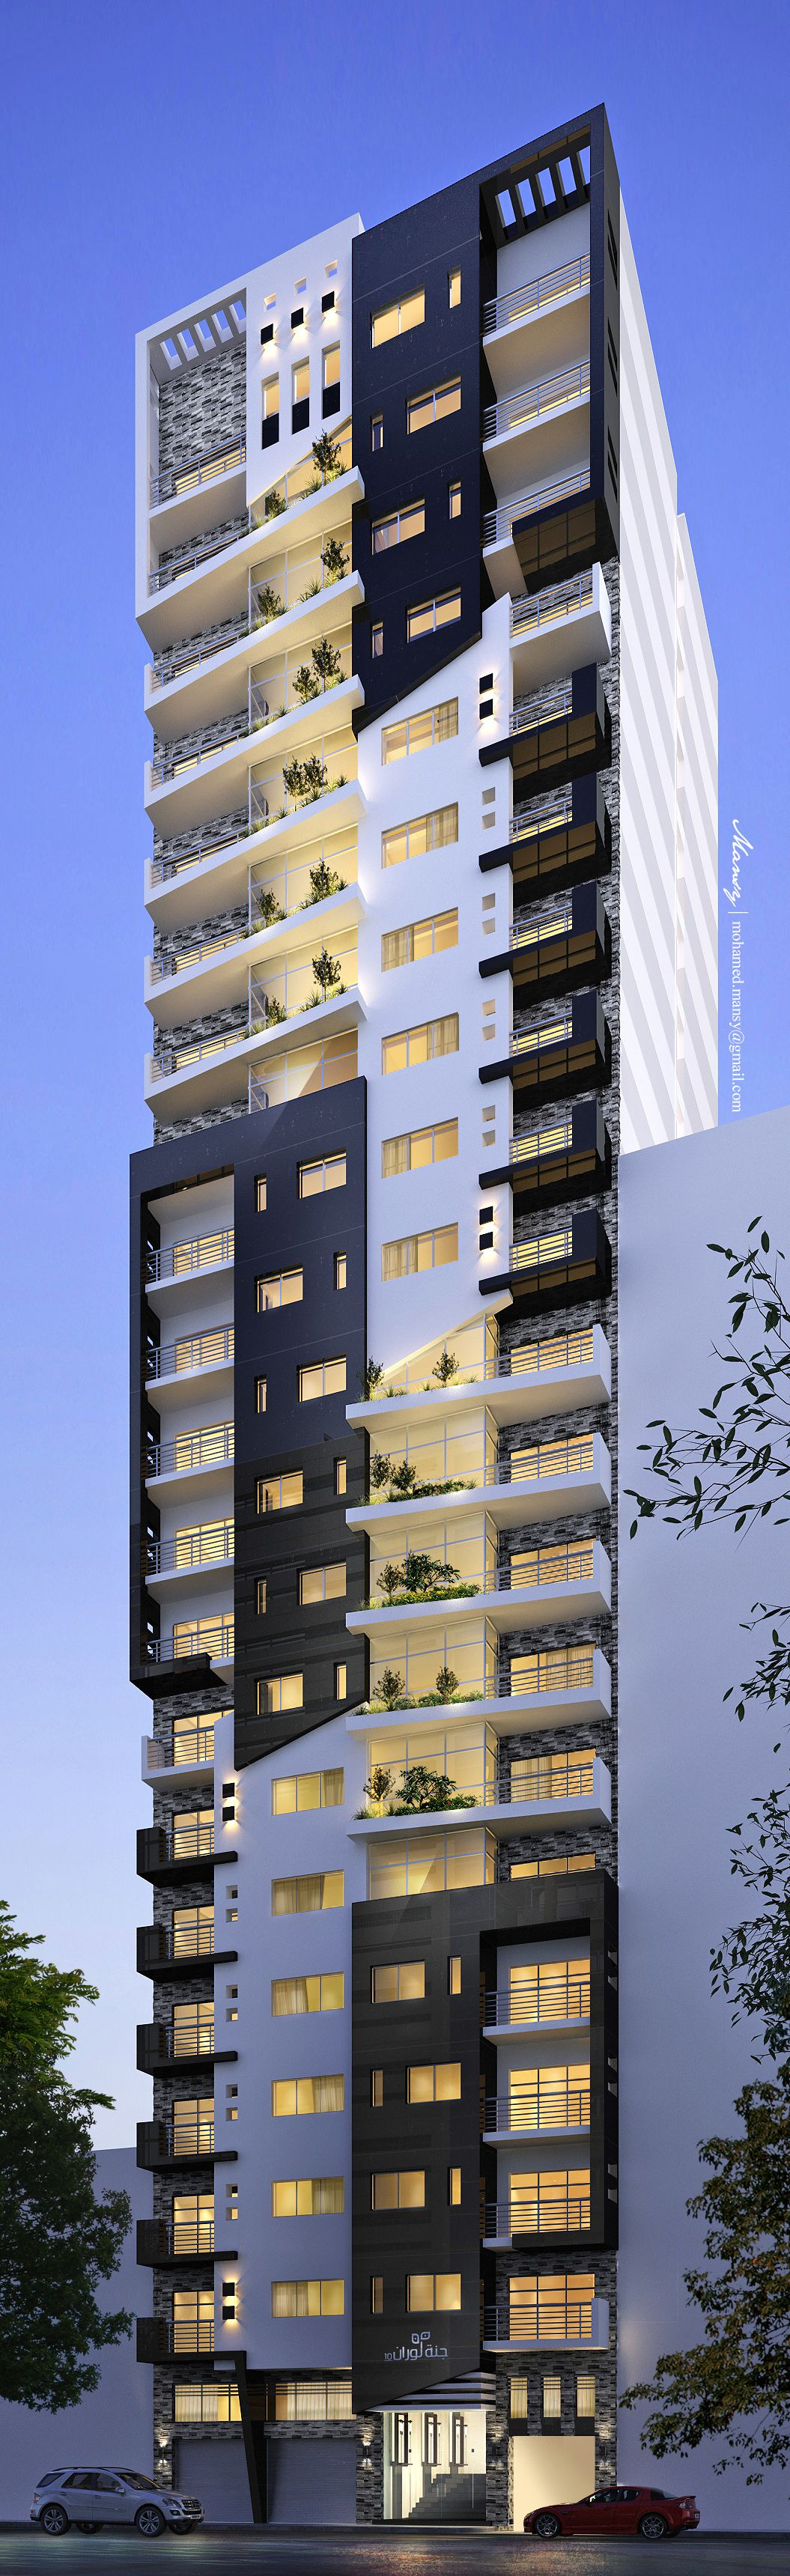 Loran High Rise Residential Apartment Building On Behance · Building FacadeBuilding  ElevationModern ...